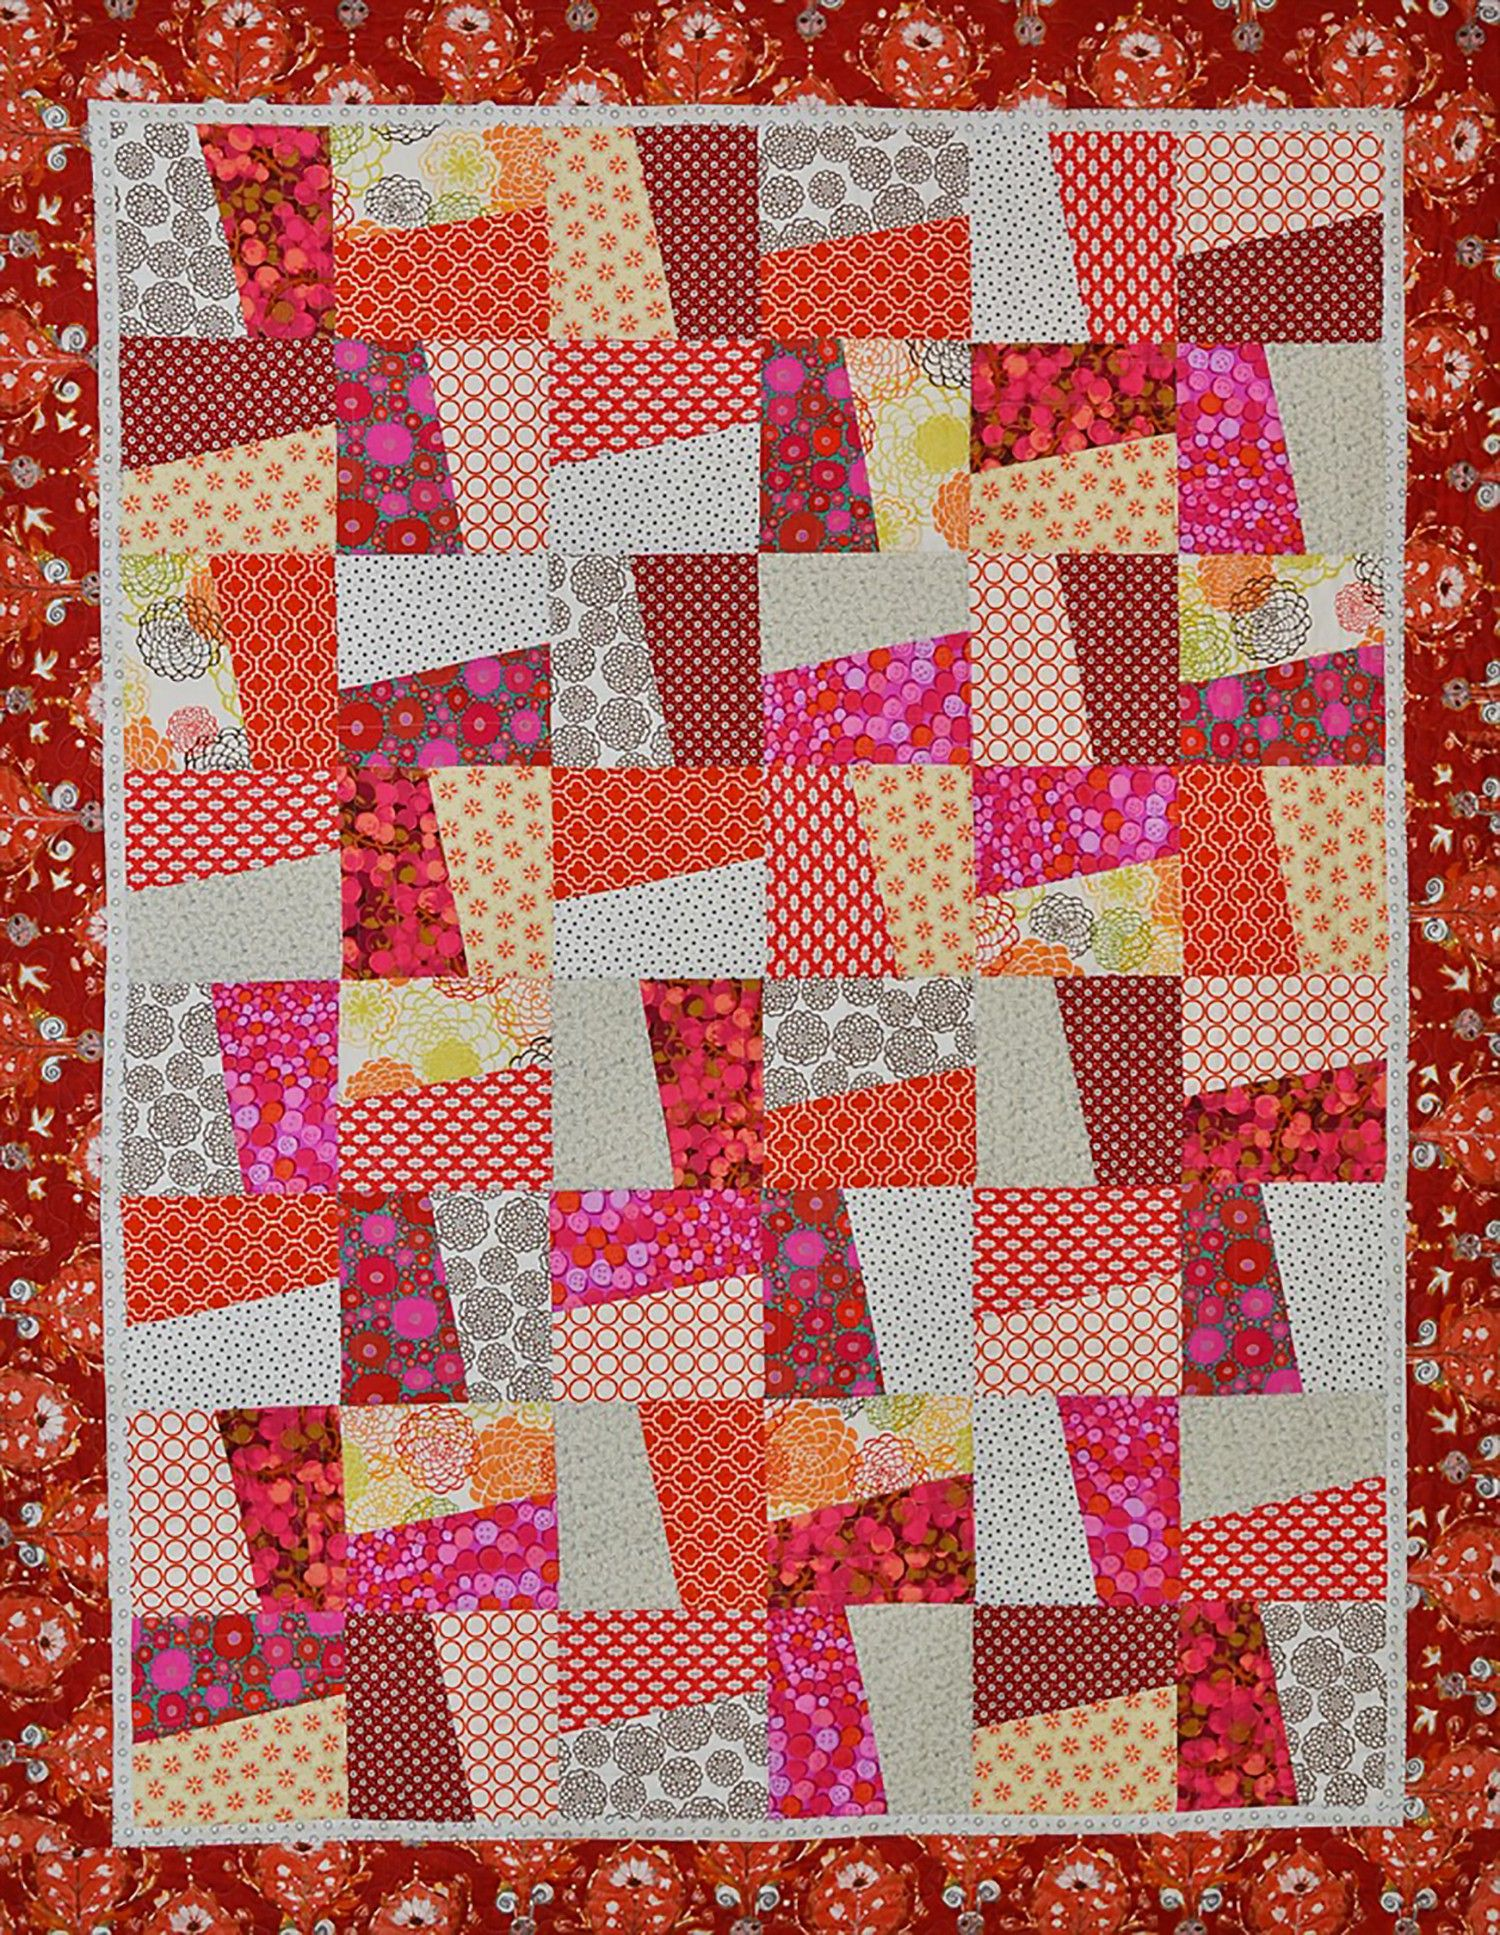 Twirl By Alexander Karla 59 1 2in x 76 1 2in Uses Creative Grids